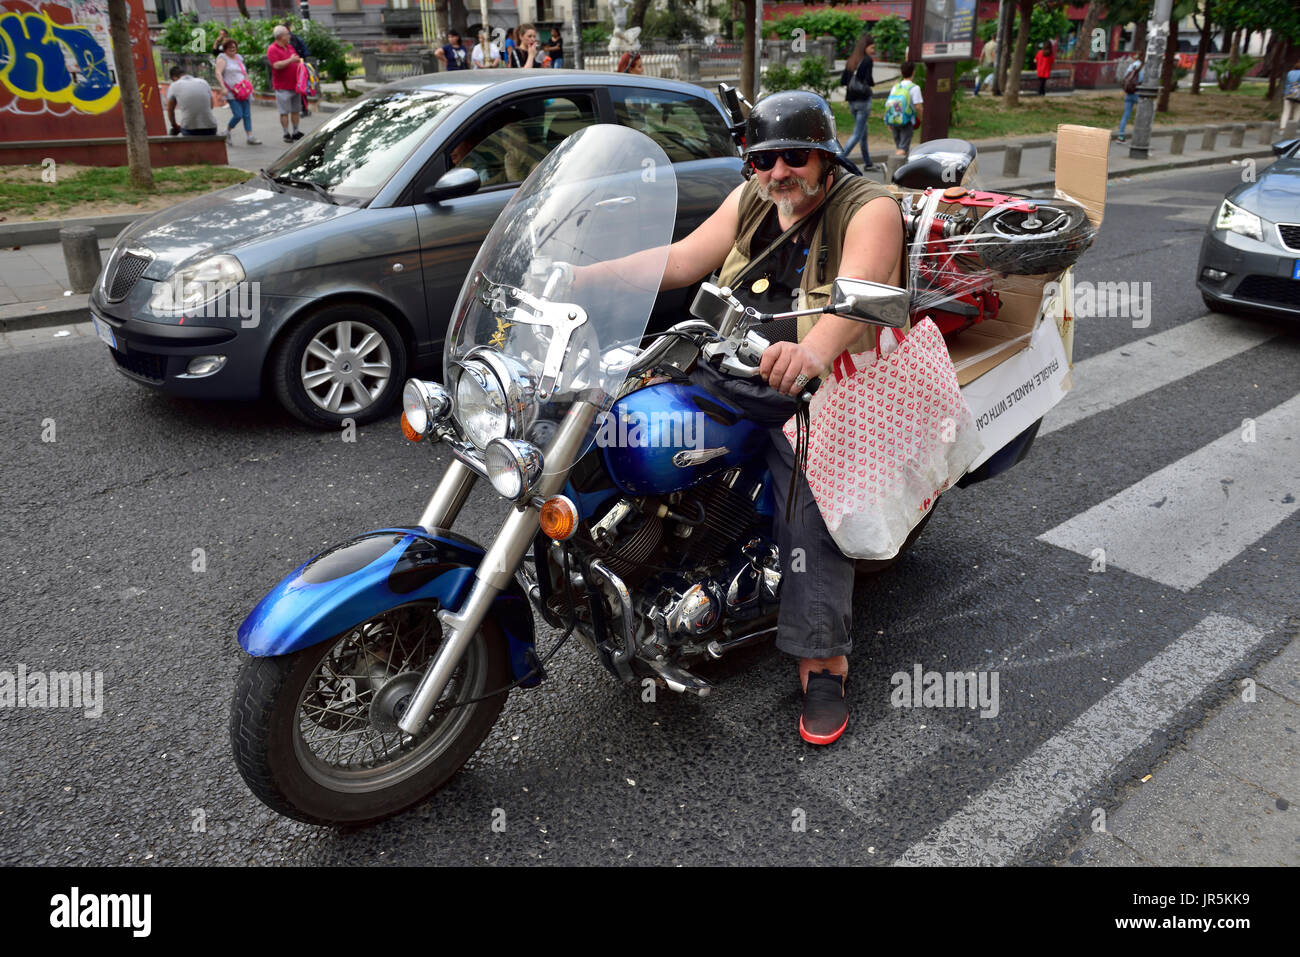 Man on motorcycle on Naples city street with large parcel - Stock Image